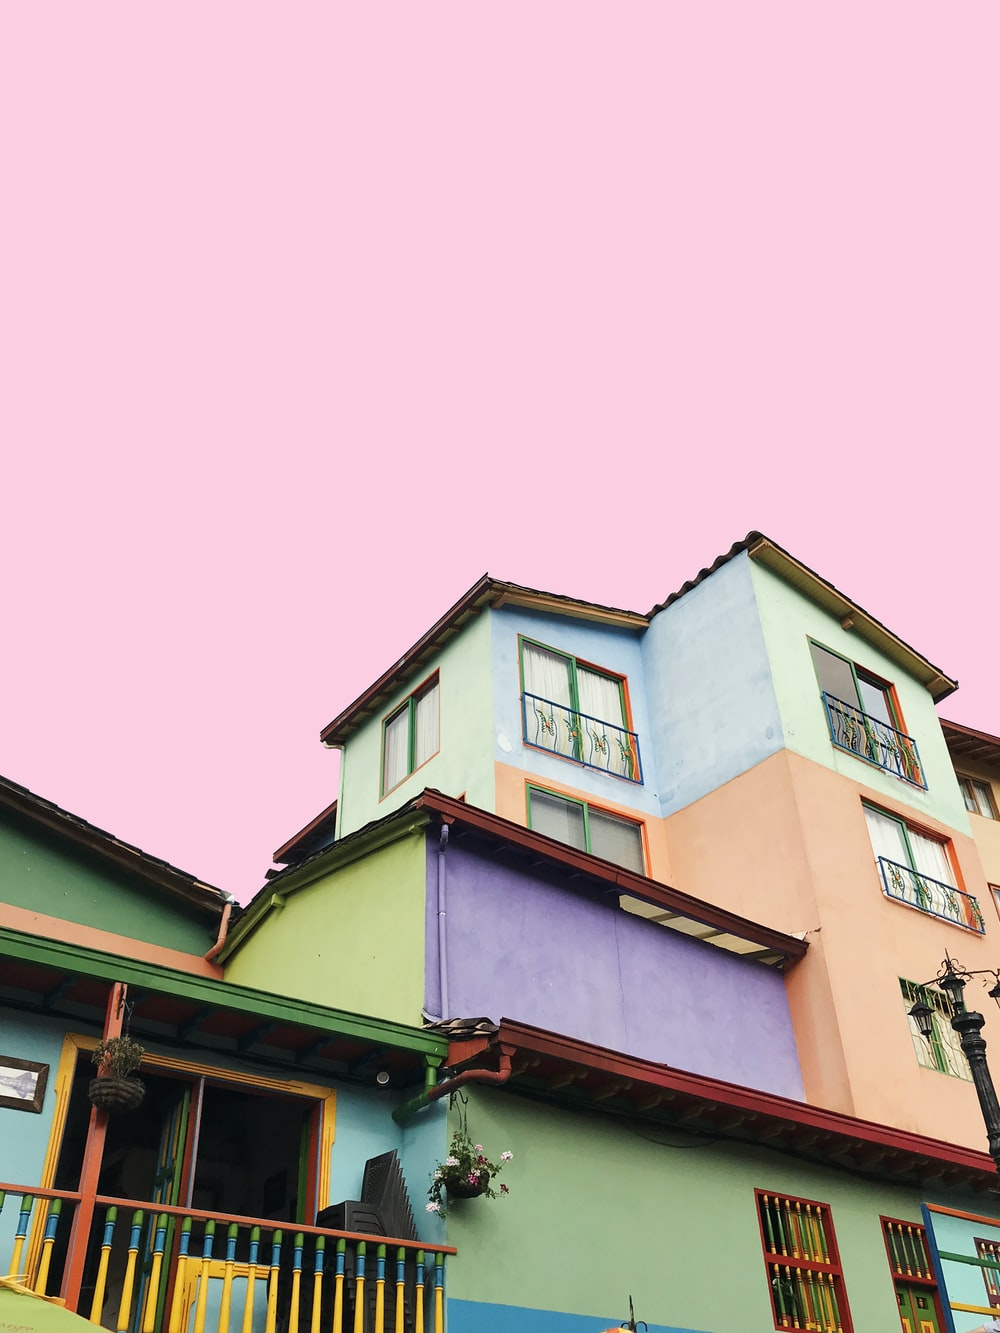 multicolored house under pink sky